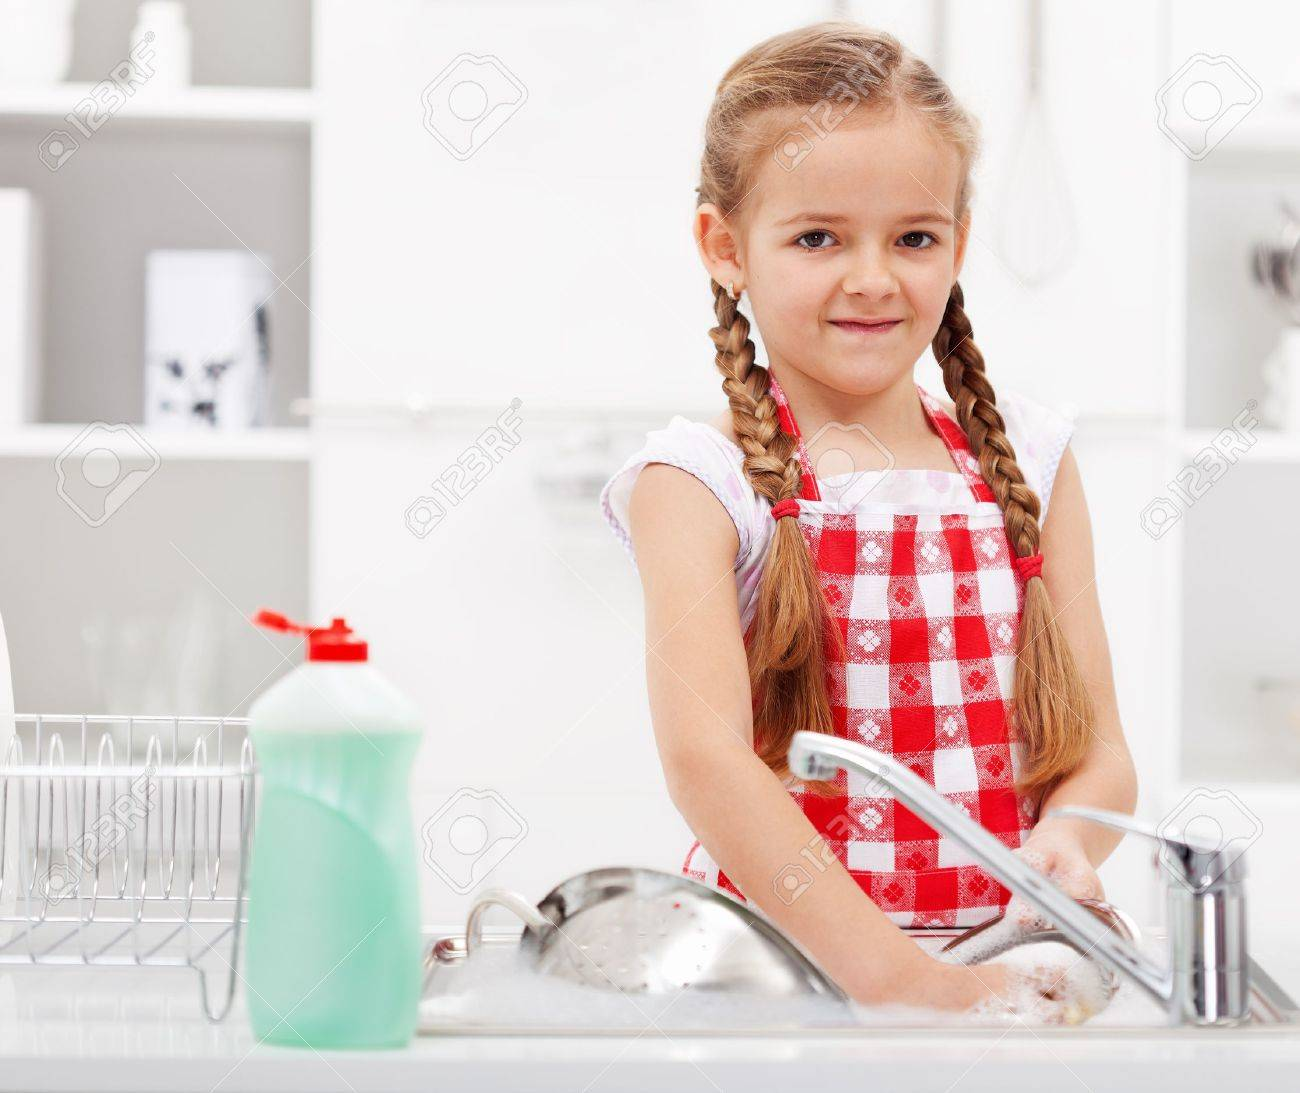 Little girl washing dishes in the kitchen - closeup - 20451482